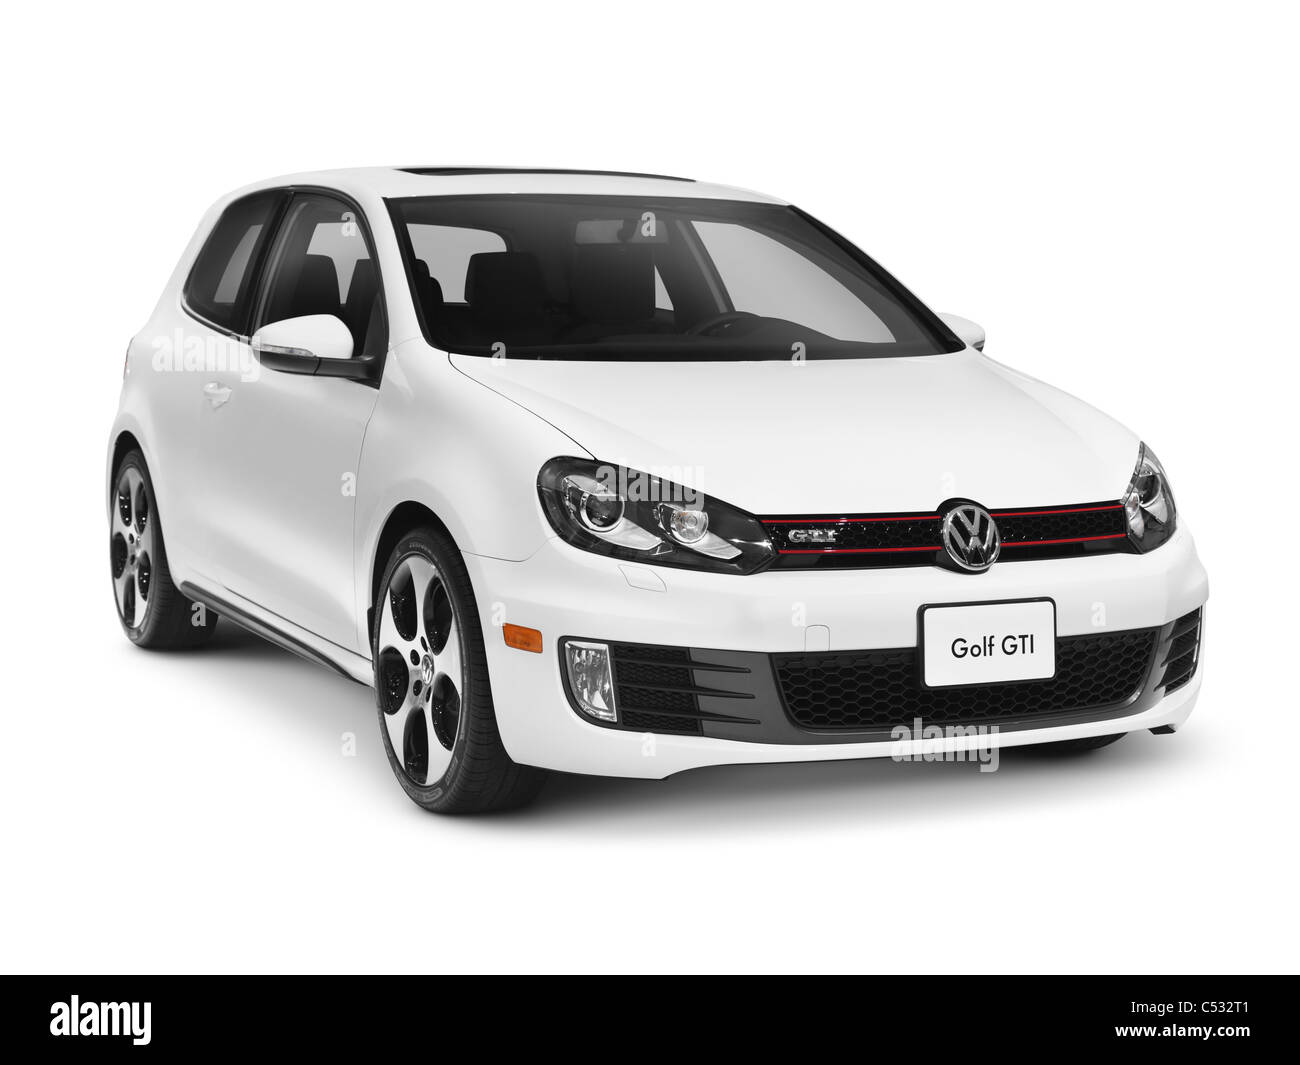 White 2011 Volkswagen Golf Gti Isolated Car With Clipping